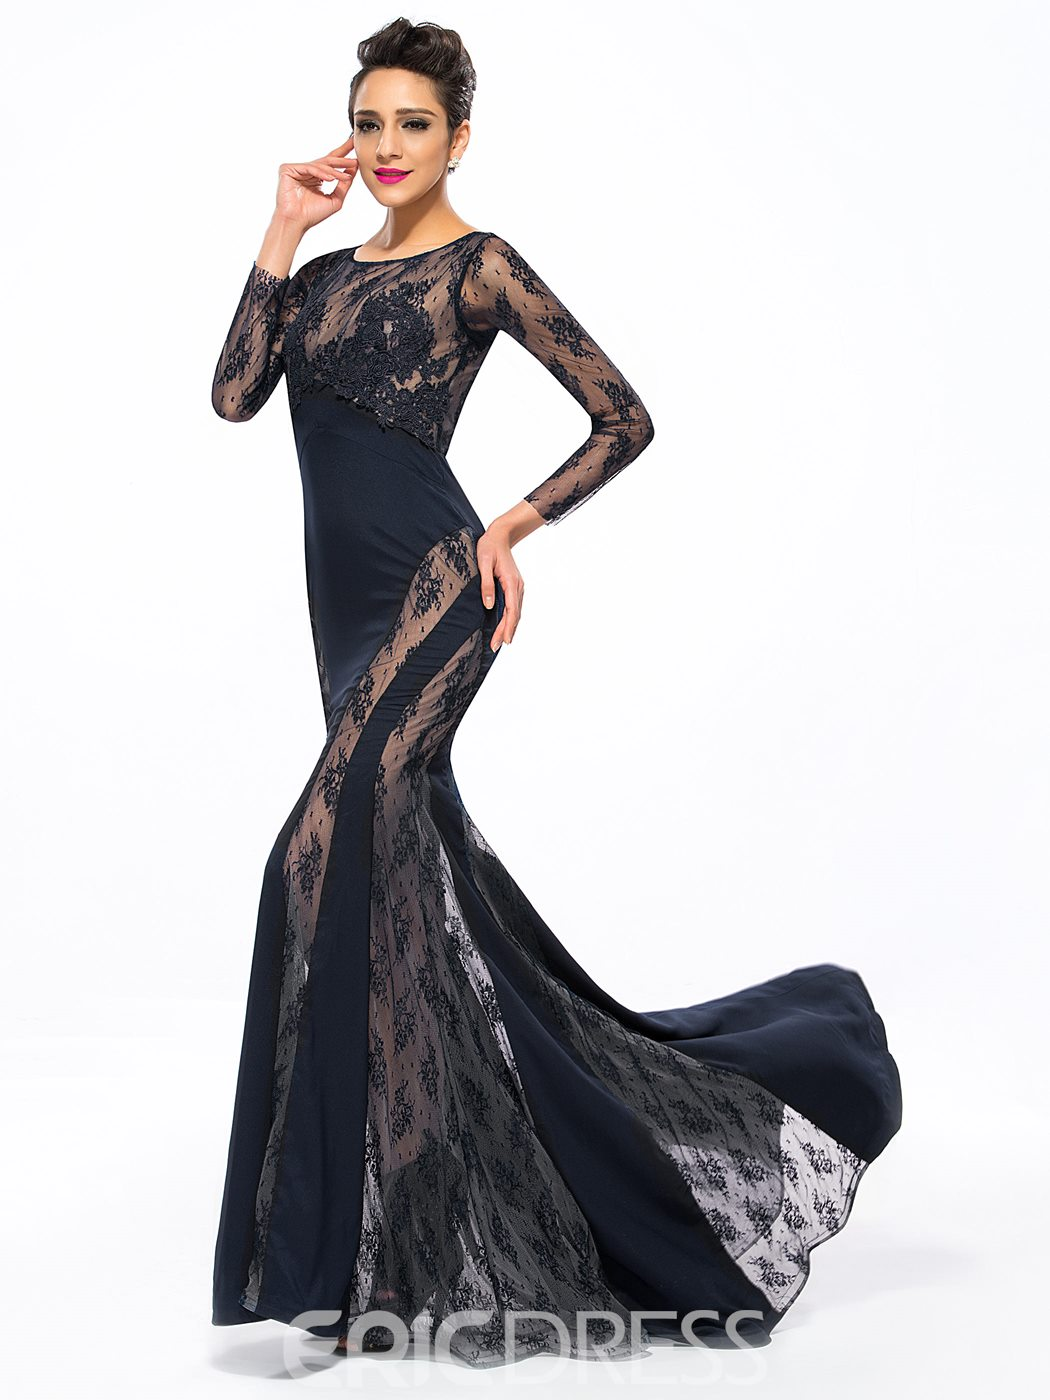 Ericdress Lace Appliques Mermaid Evening Dress With SweepTrain